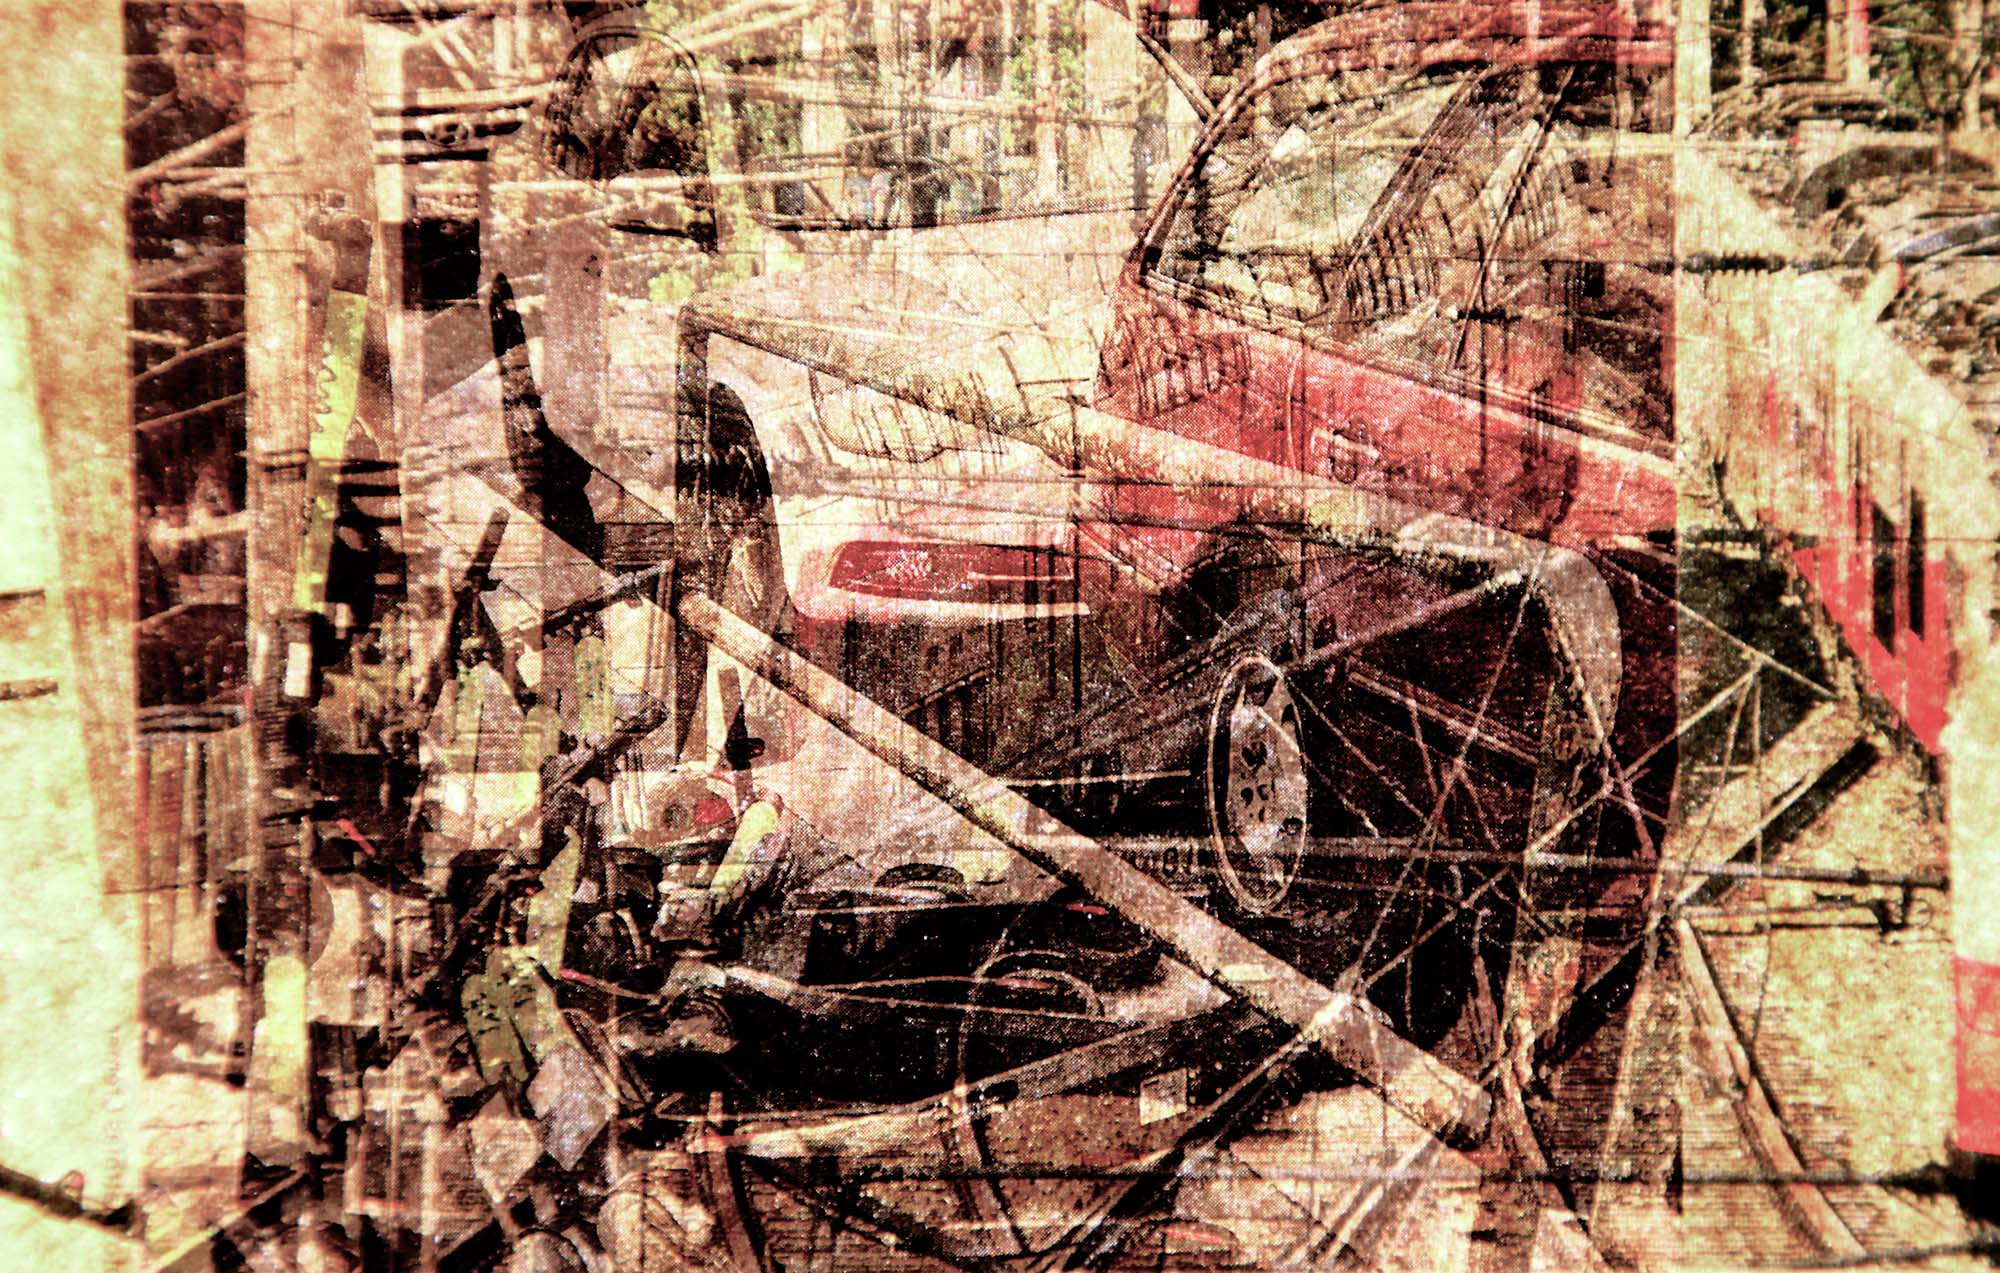 reality constructions, reality, memory, depiction, artistic, modern,